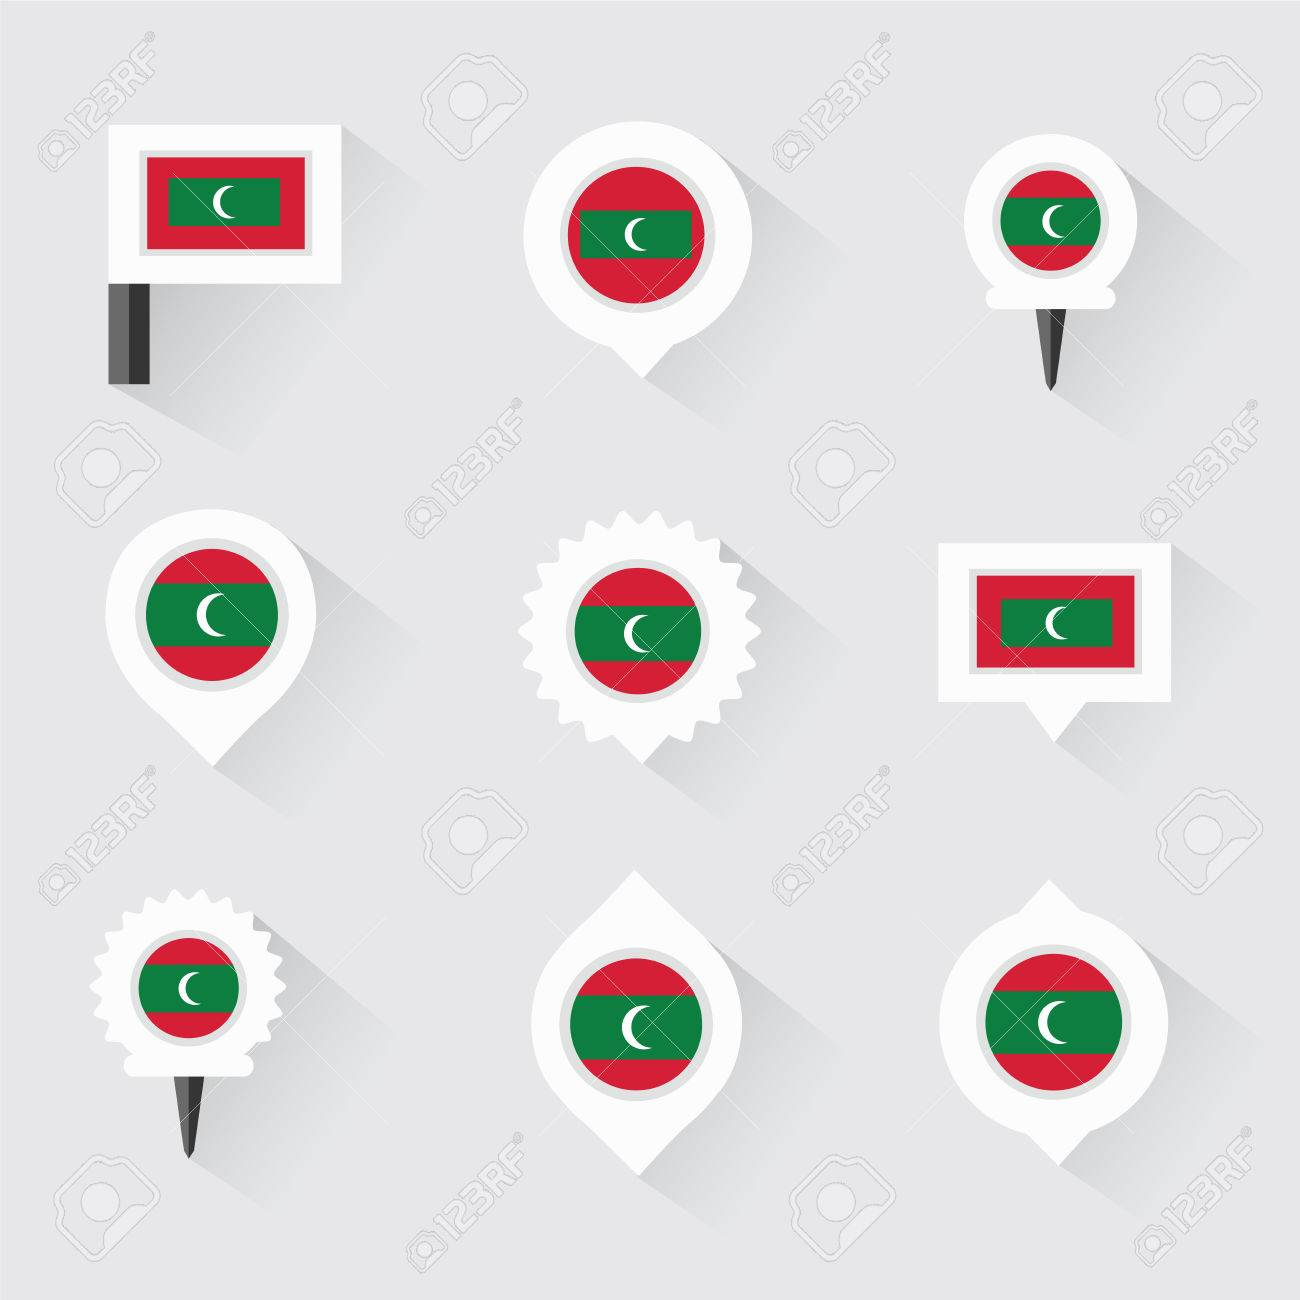 Maldives Flag And Pins For Infographic, And Map Design Royalty Free ...